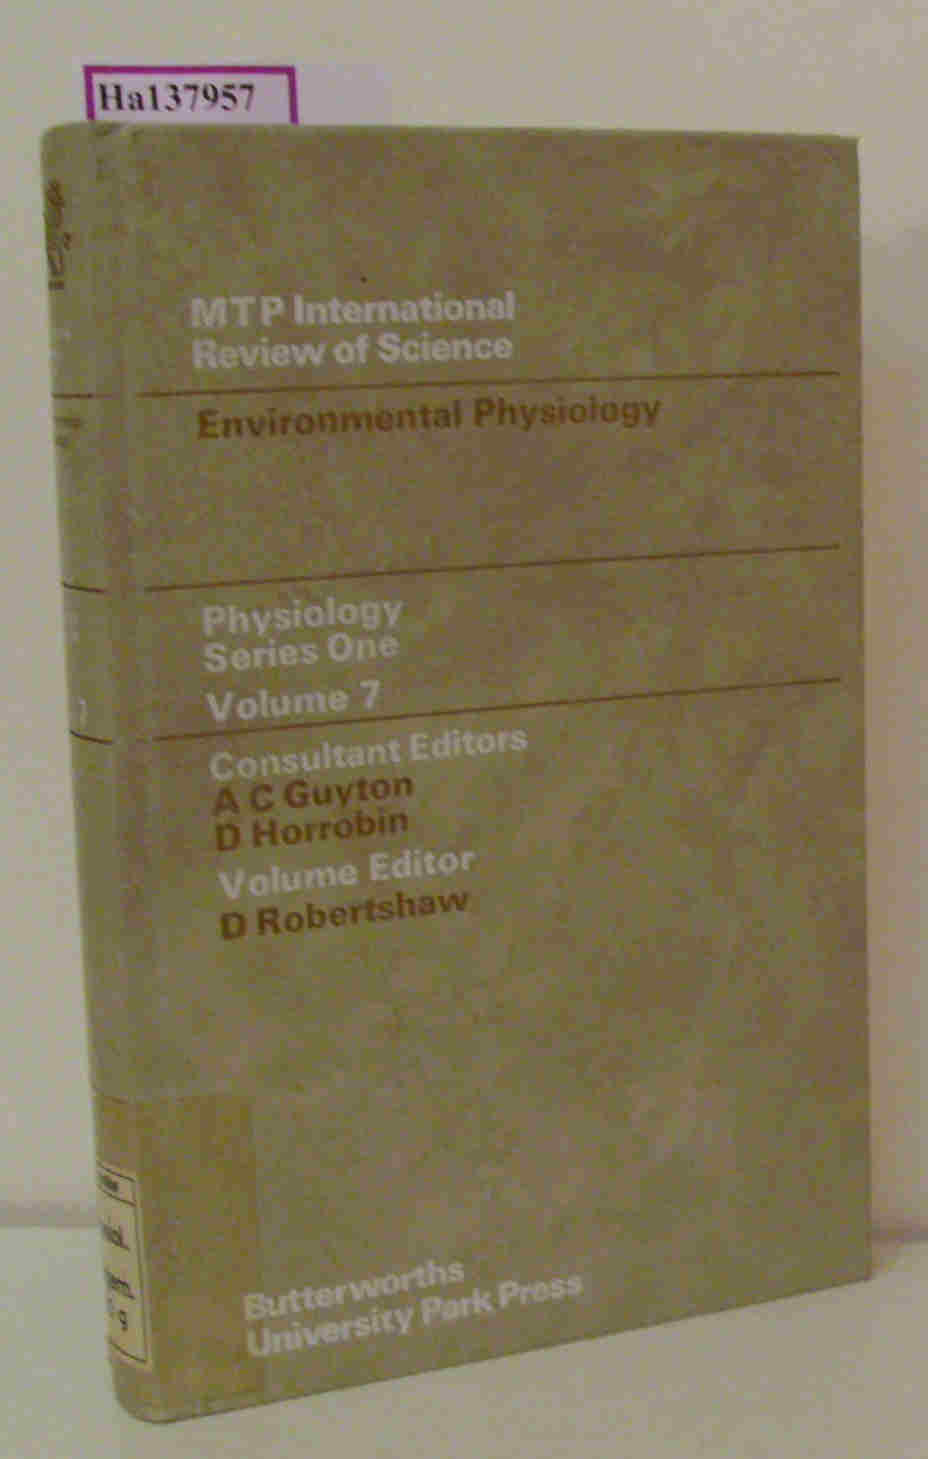 Environmental Physiology. Vol. 7. Physiology Series One.